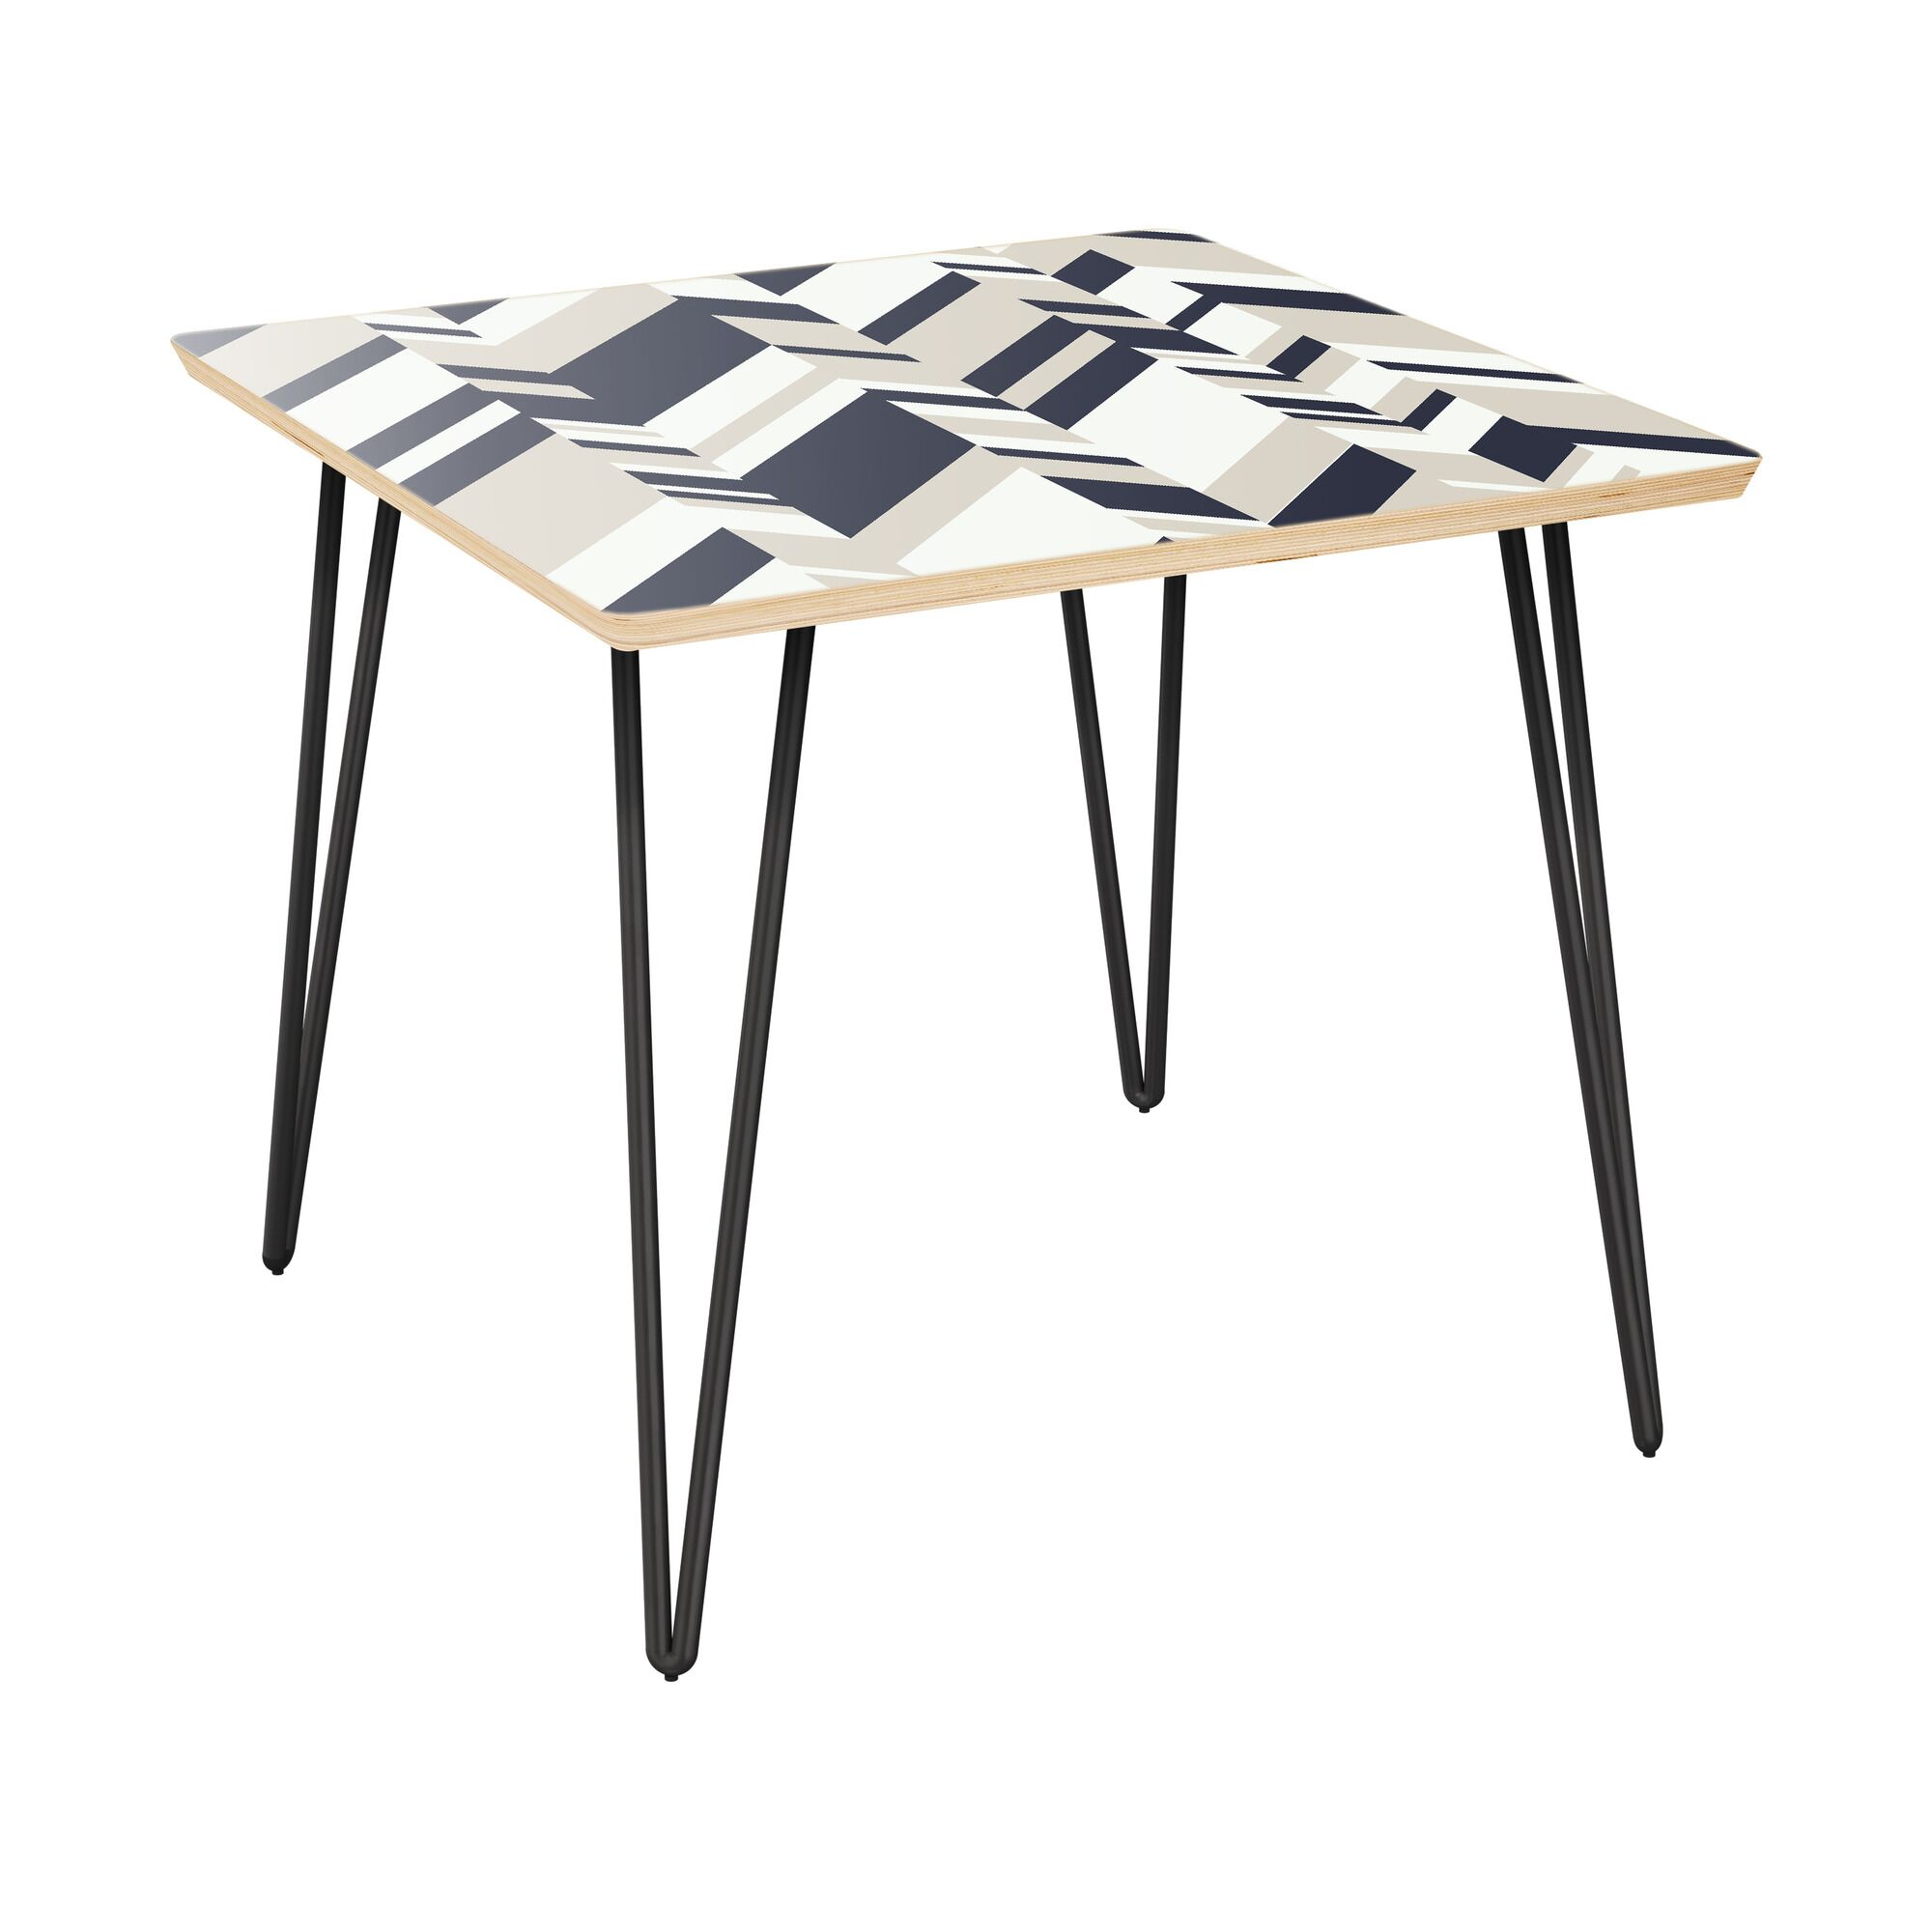 Gadbois End Table Table Top Color: Natural, Table Base Color: Black